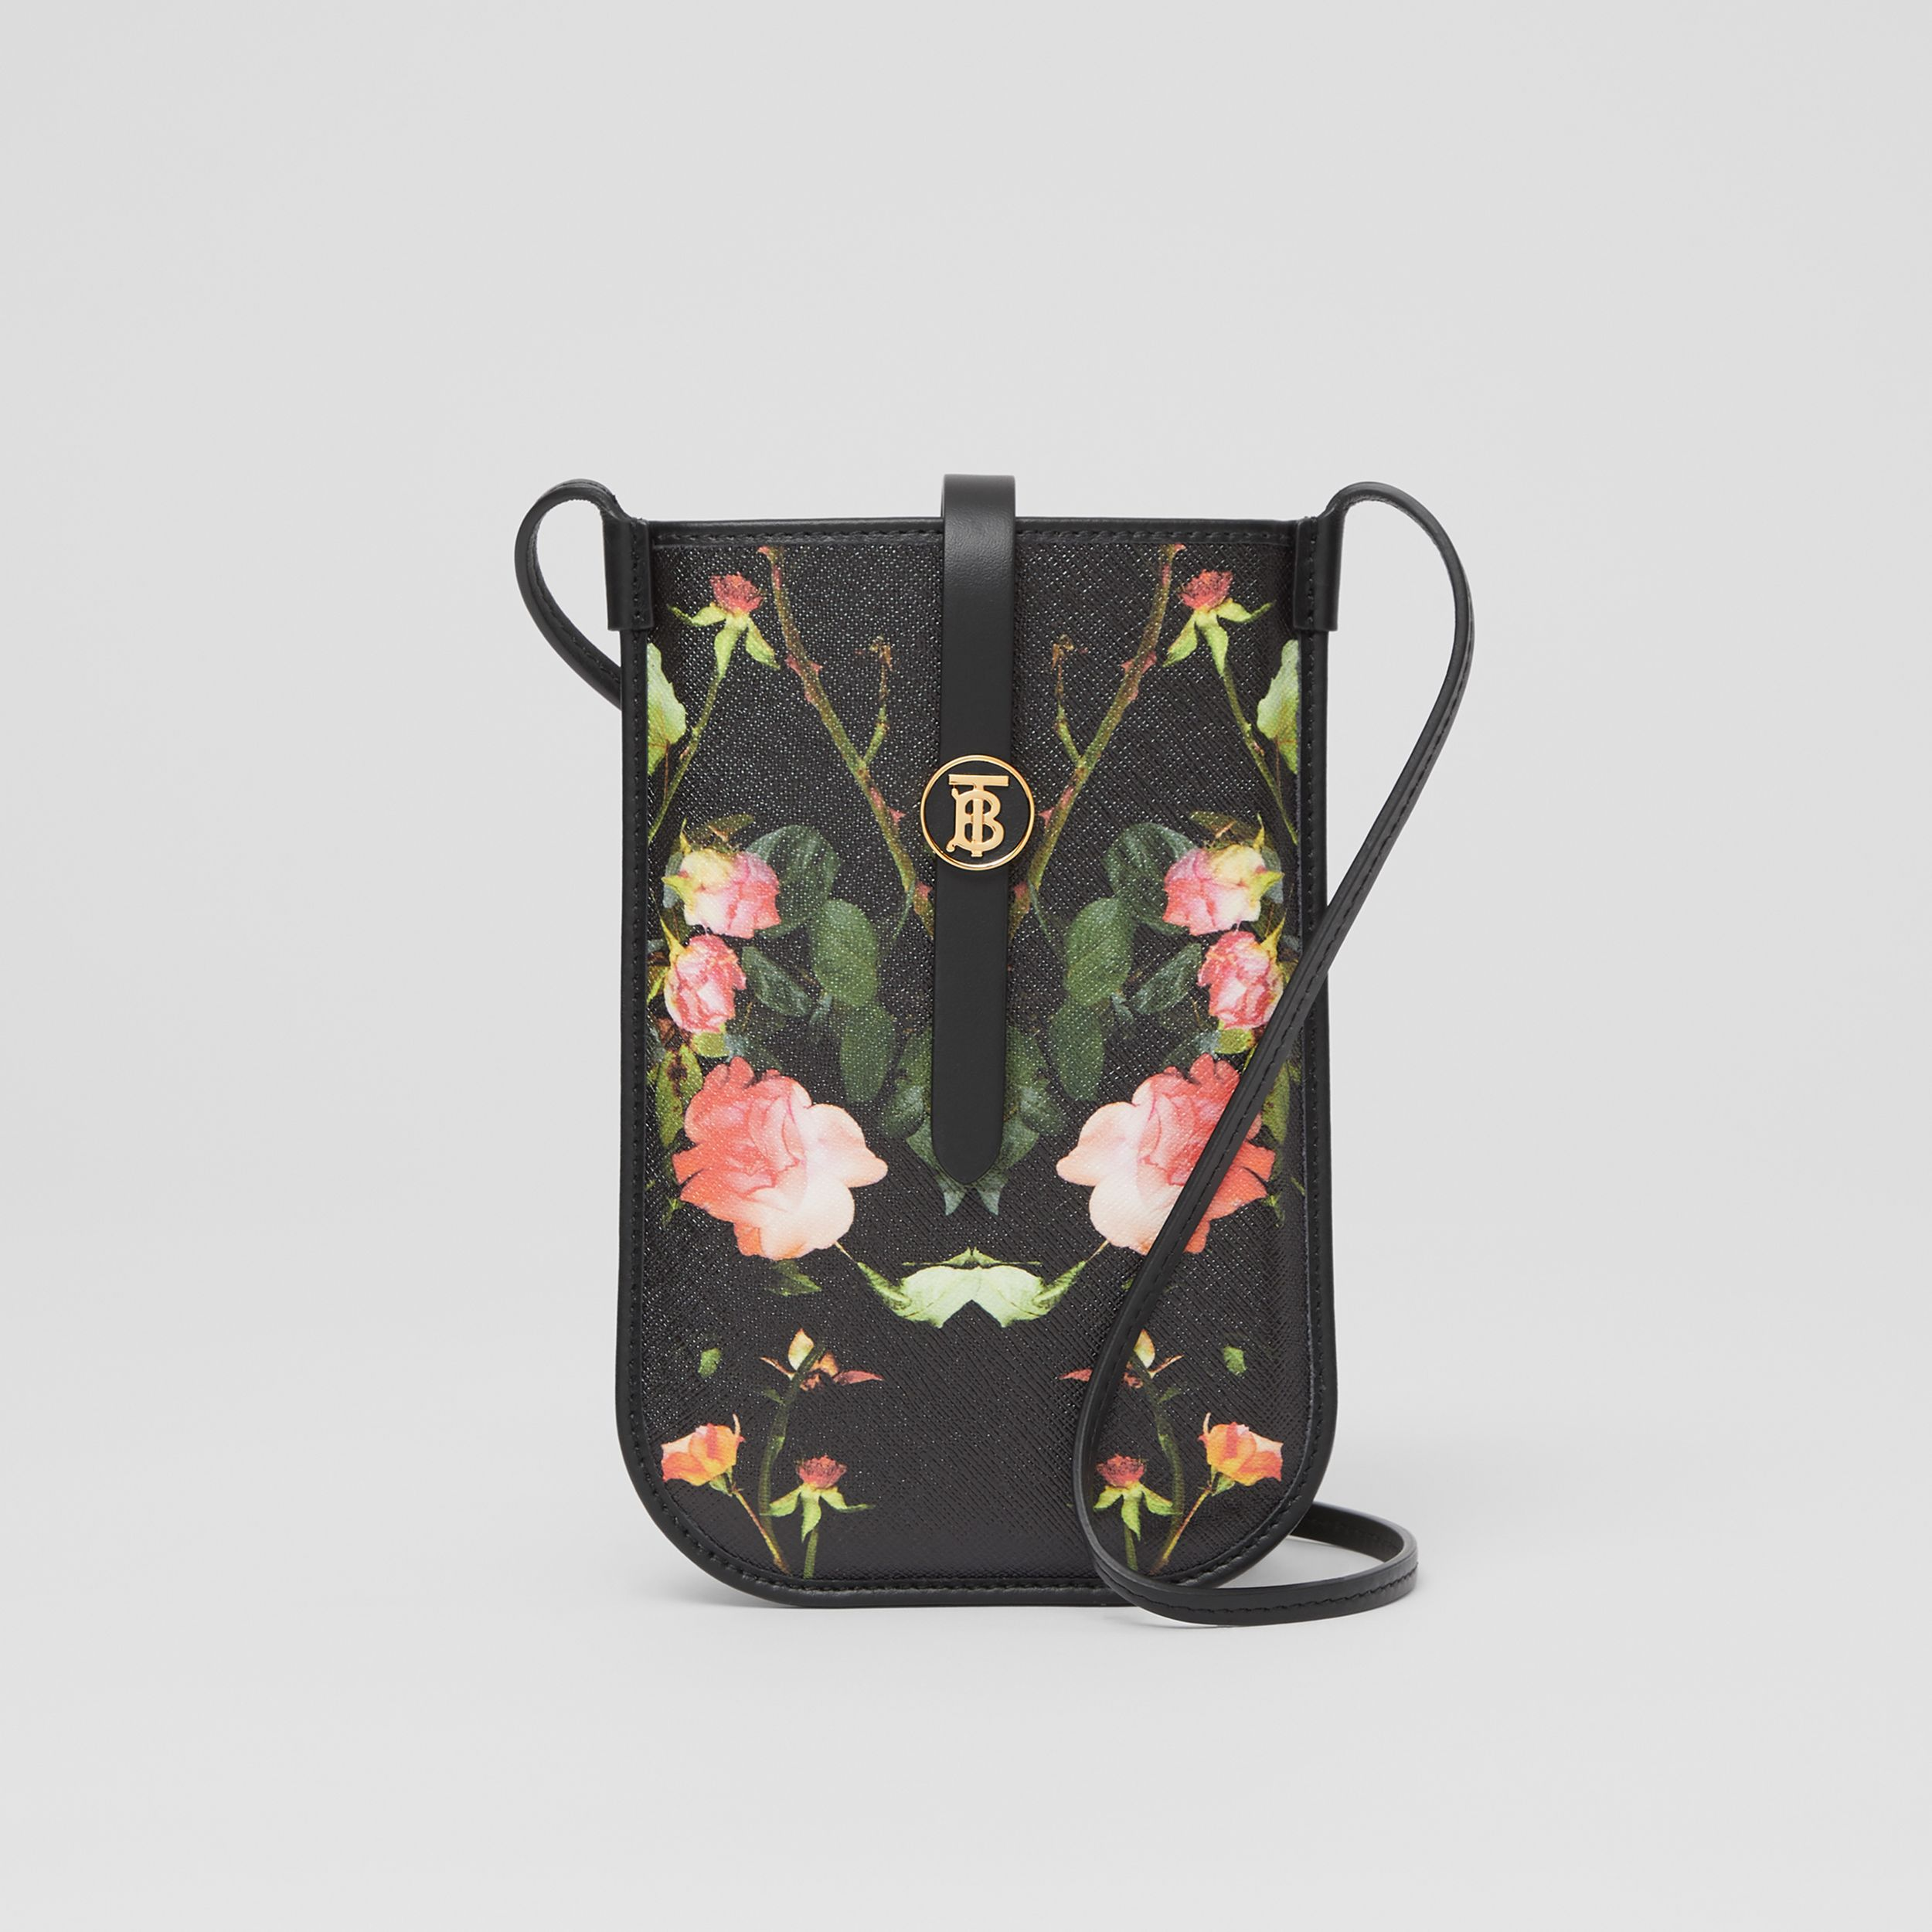 Rose Print E-canvas Phone Case with Strap in Black | Burberry - 1